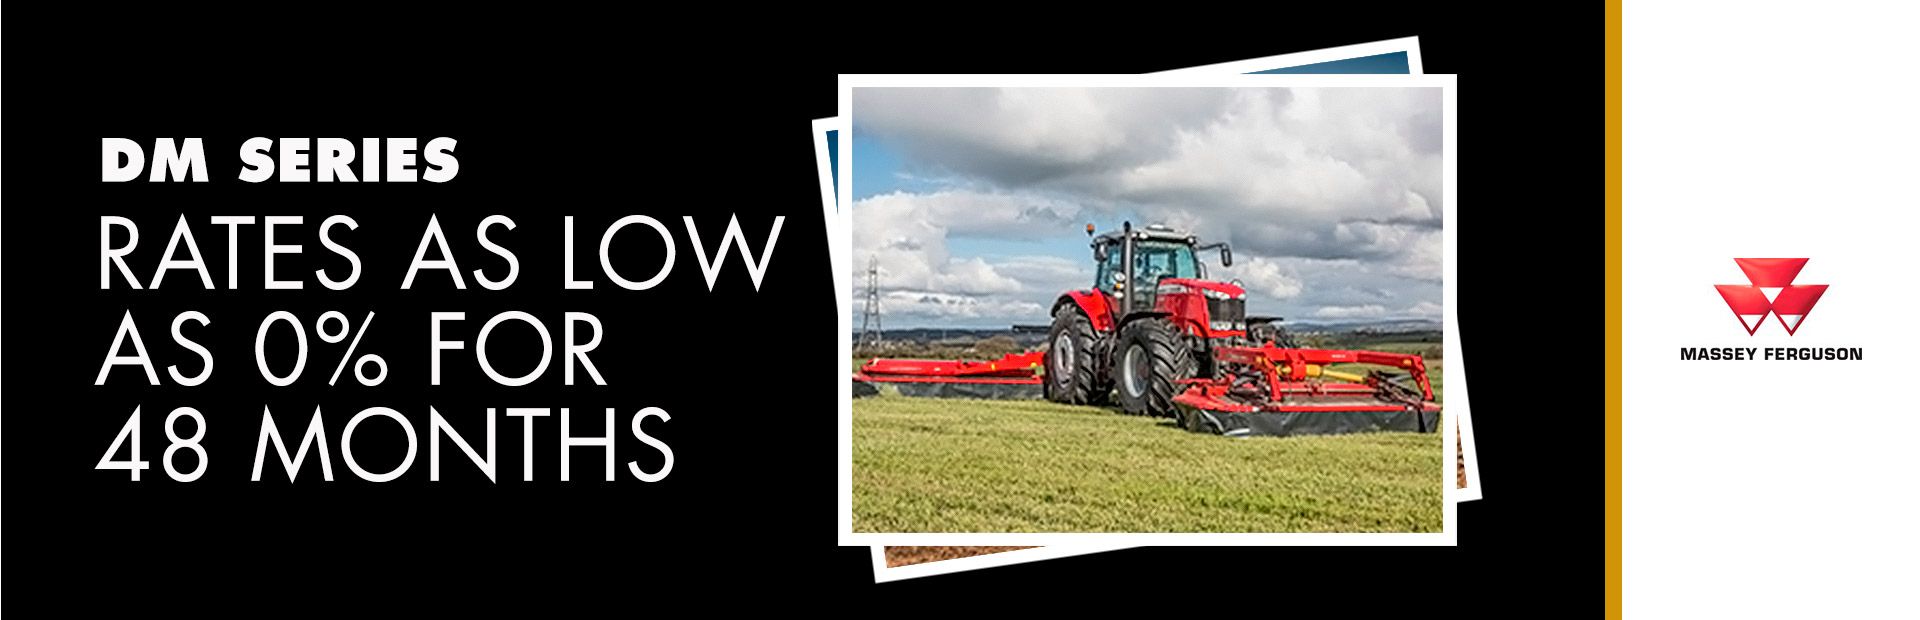 Massey Ferguson: DM Series - Rates as low as 0% for 48 Months